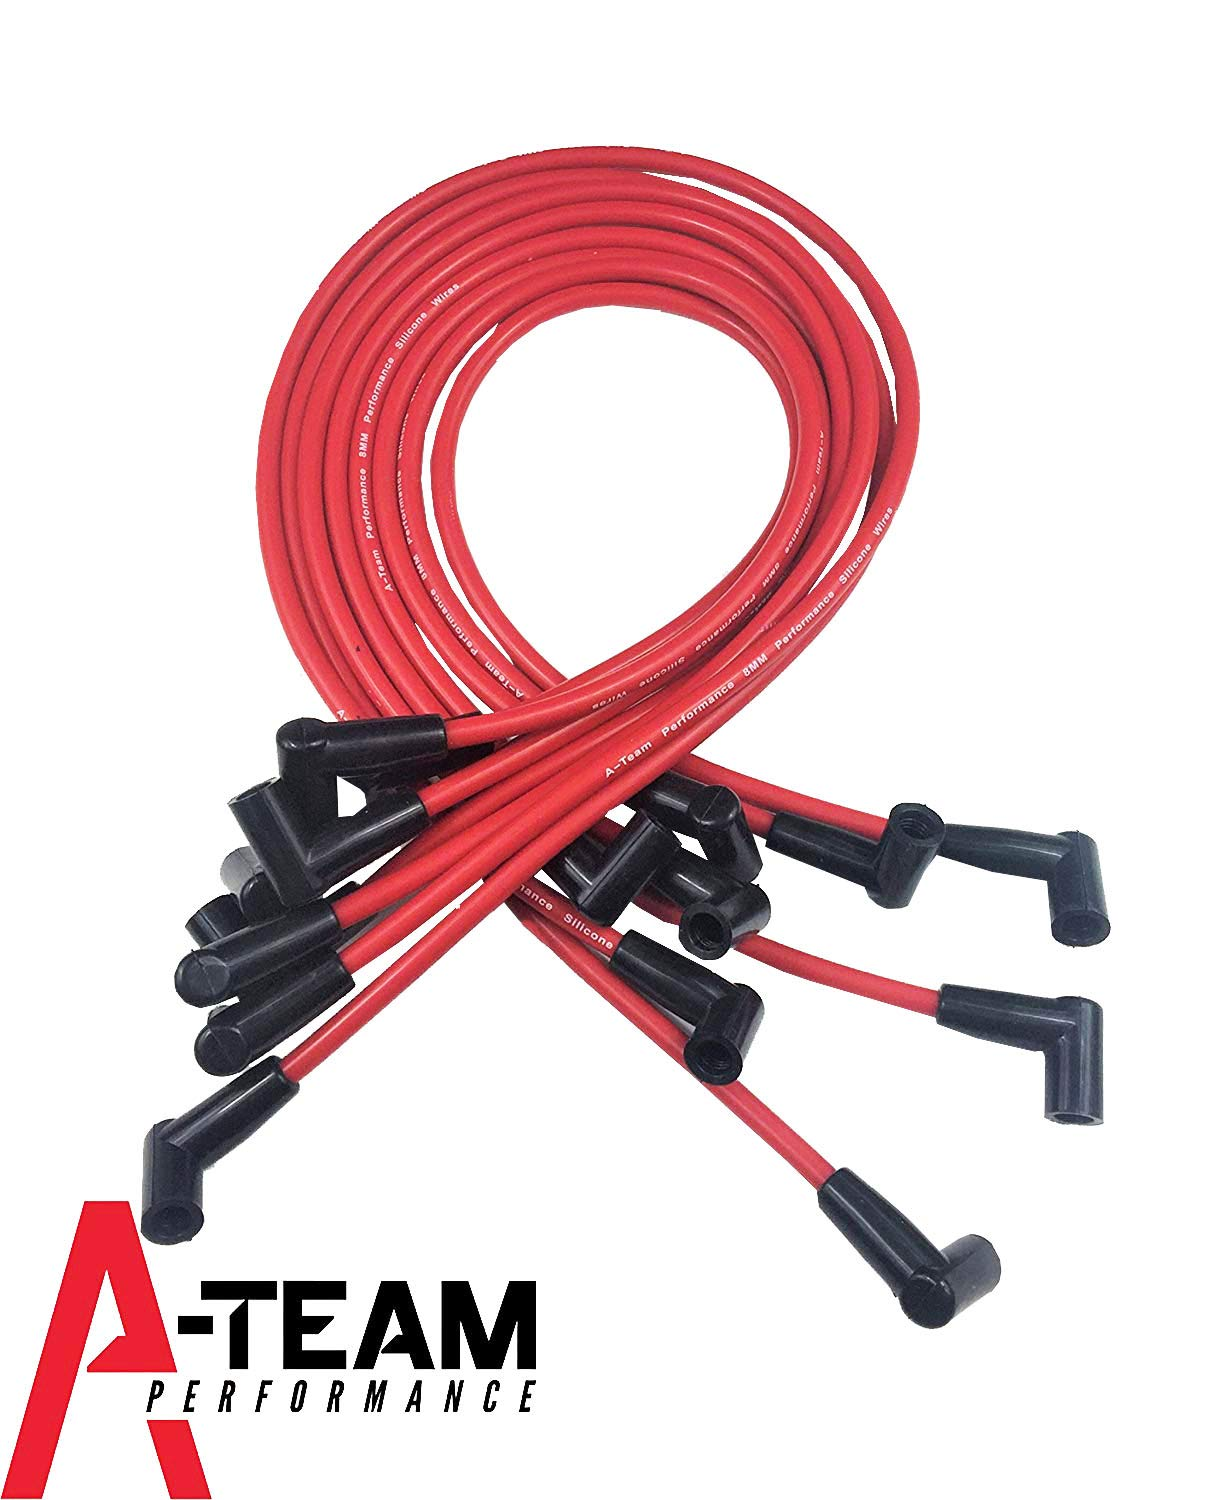 A-Team Performance 8.0mm Red Silicone Spark Plug Wires SBC Small Block Compatible With Chevy Chevrolet GMC Over the Valve Cover Wires 283 305 307 327 350 400